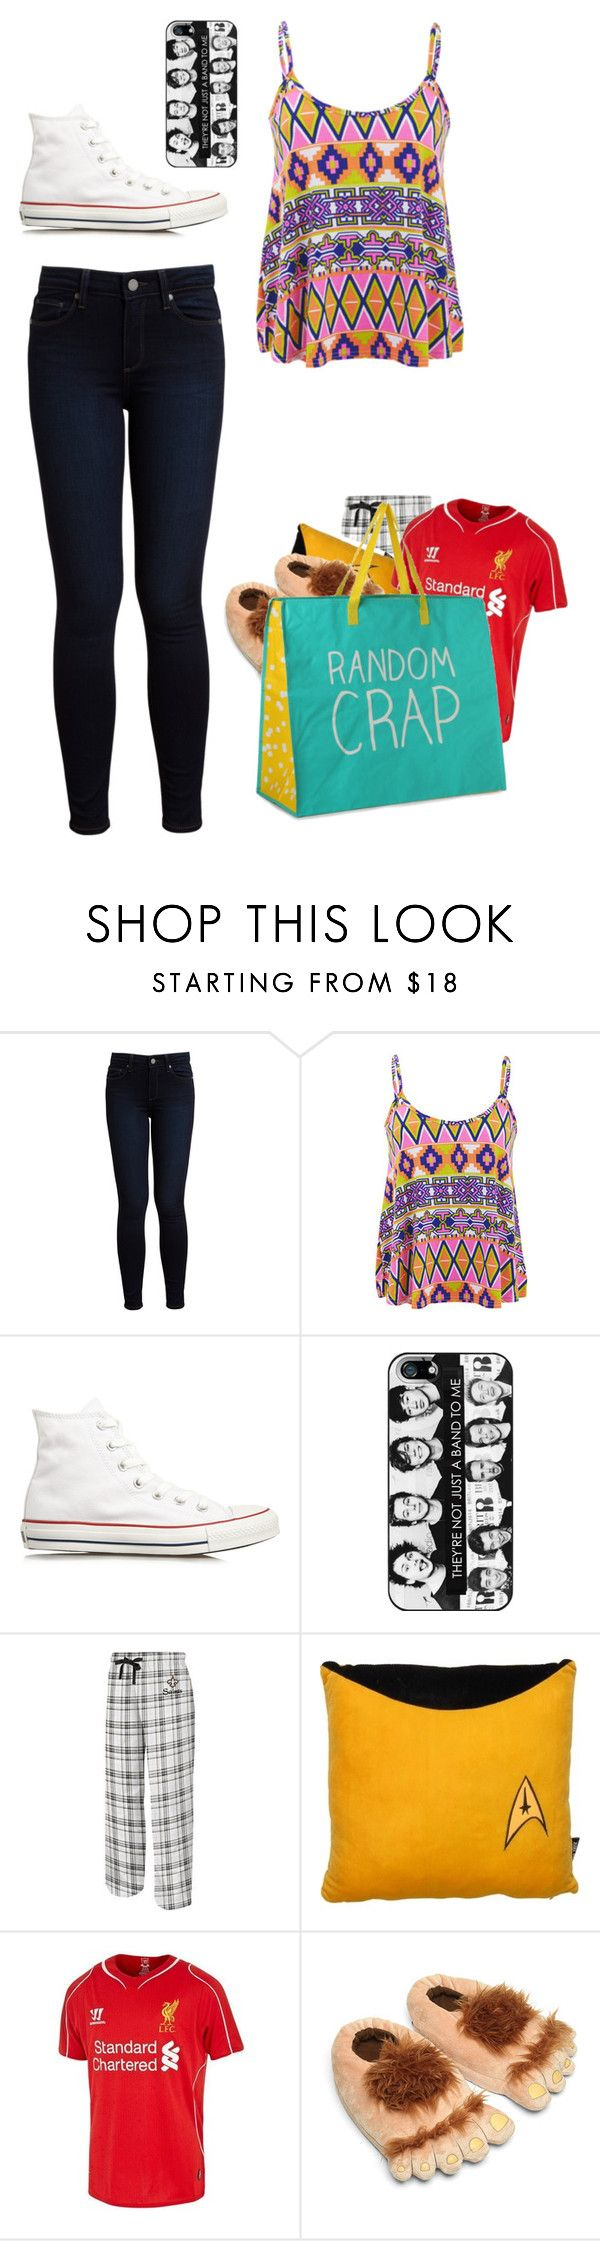 """Shopping For My Brothers Birthday"" by fgshannah ❤ liked on Polyvore featuring Paige Denim, Influence, Converse, Monday, Warrior Sports and Happy Jackson"